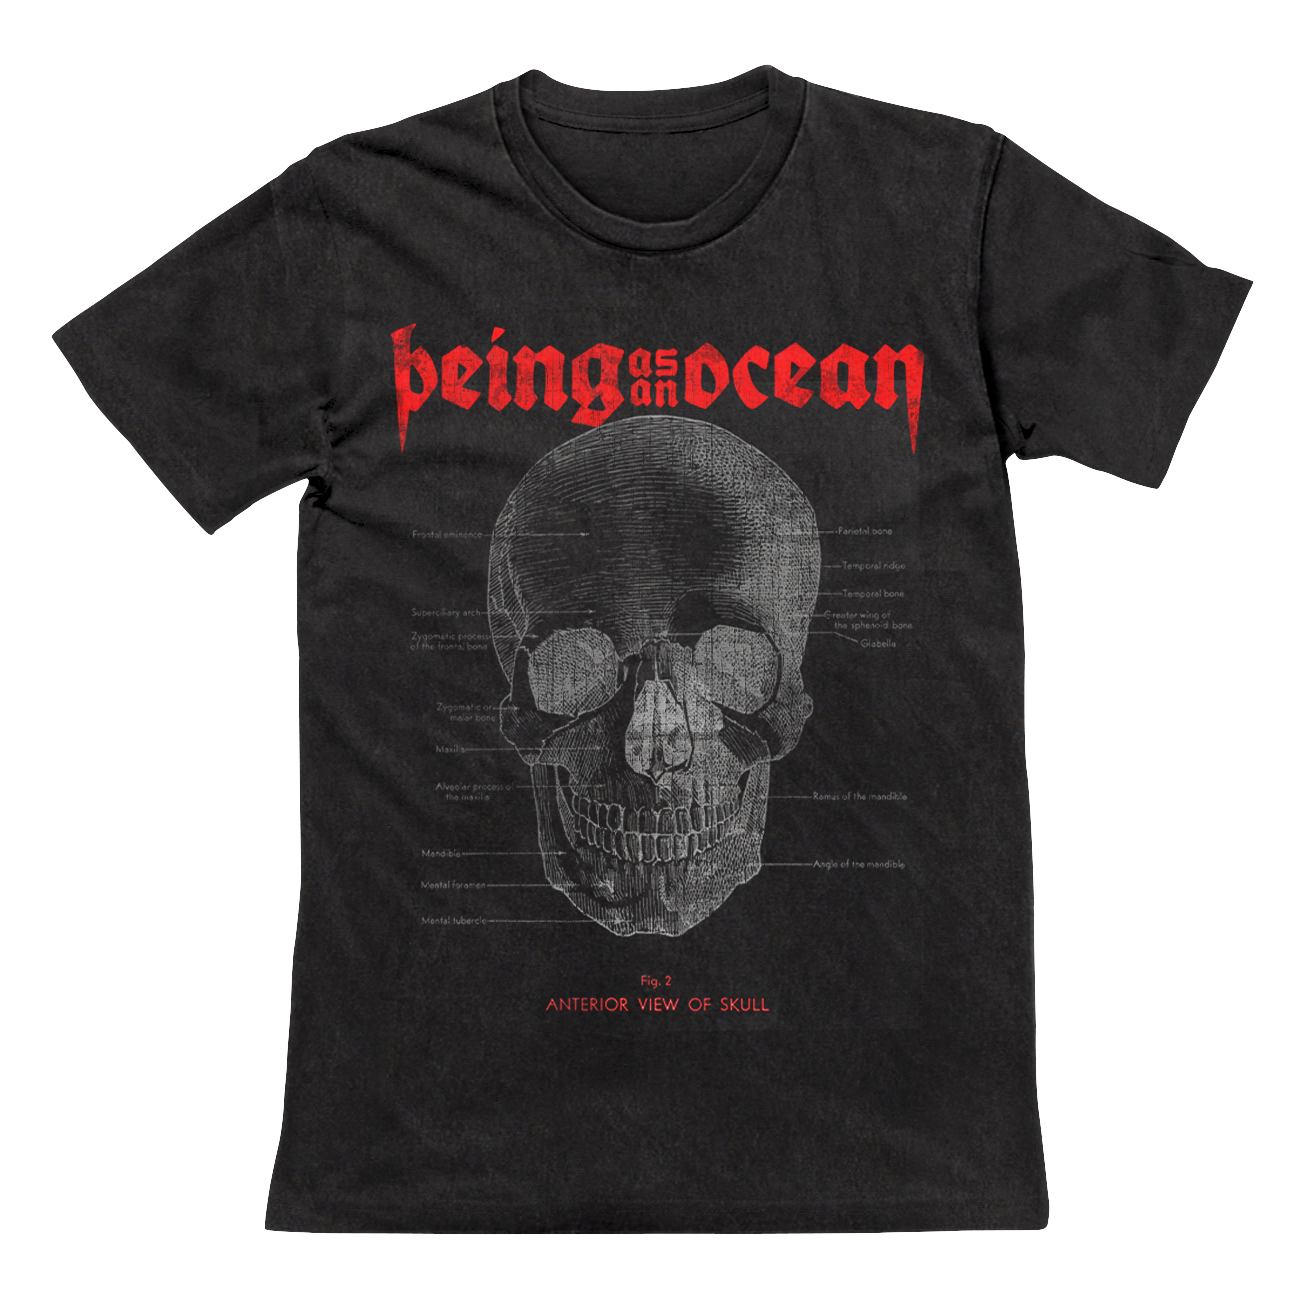 Anterior View of the Skull Tee